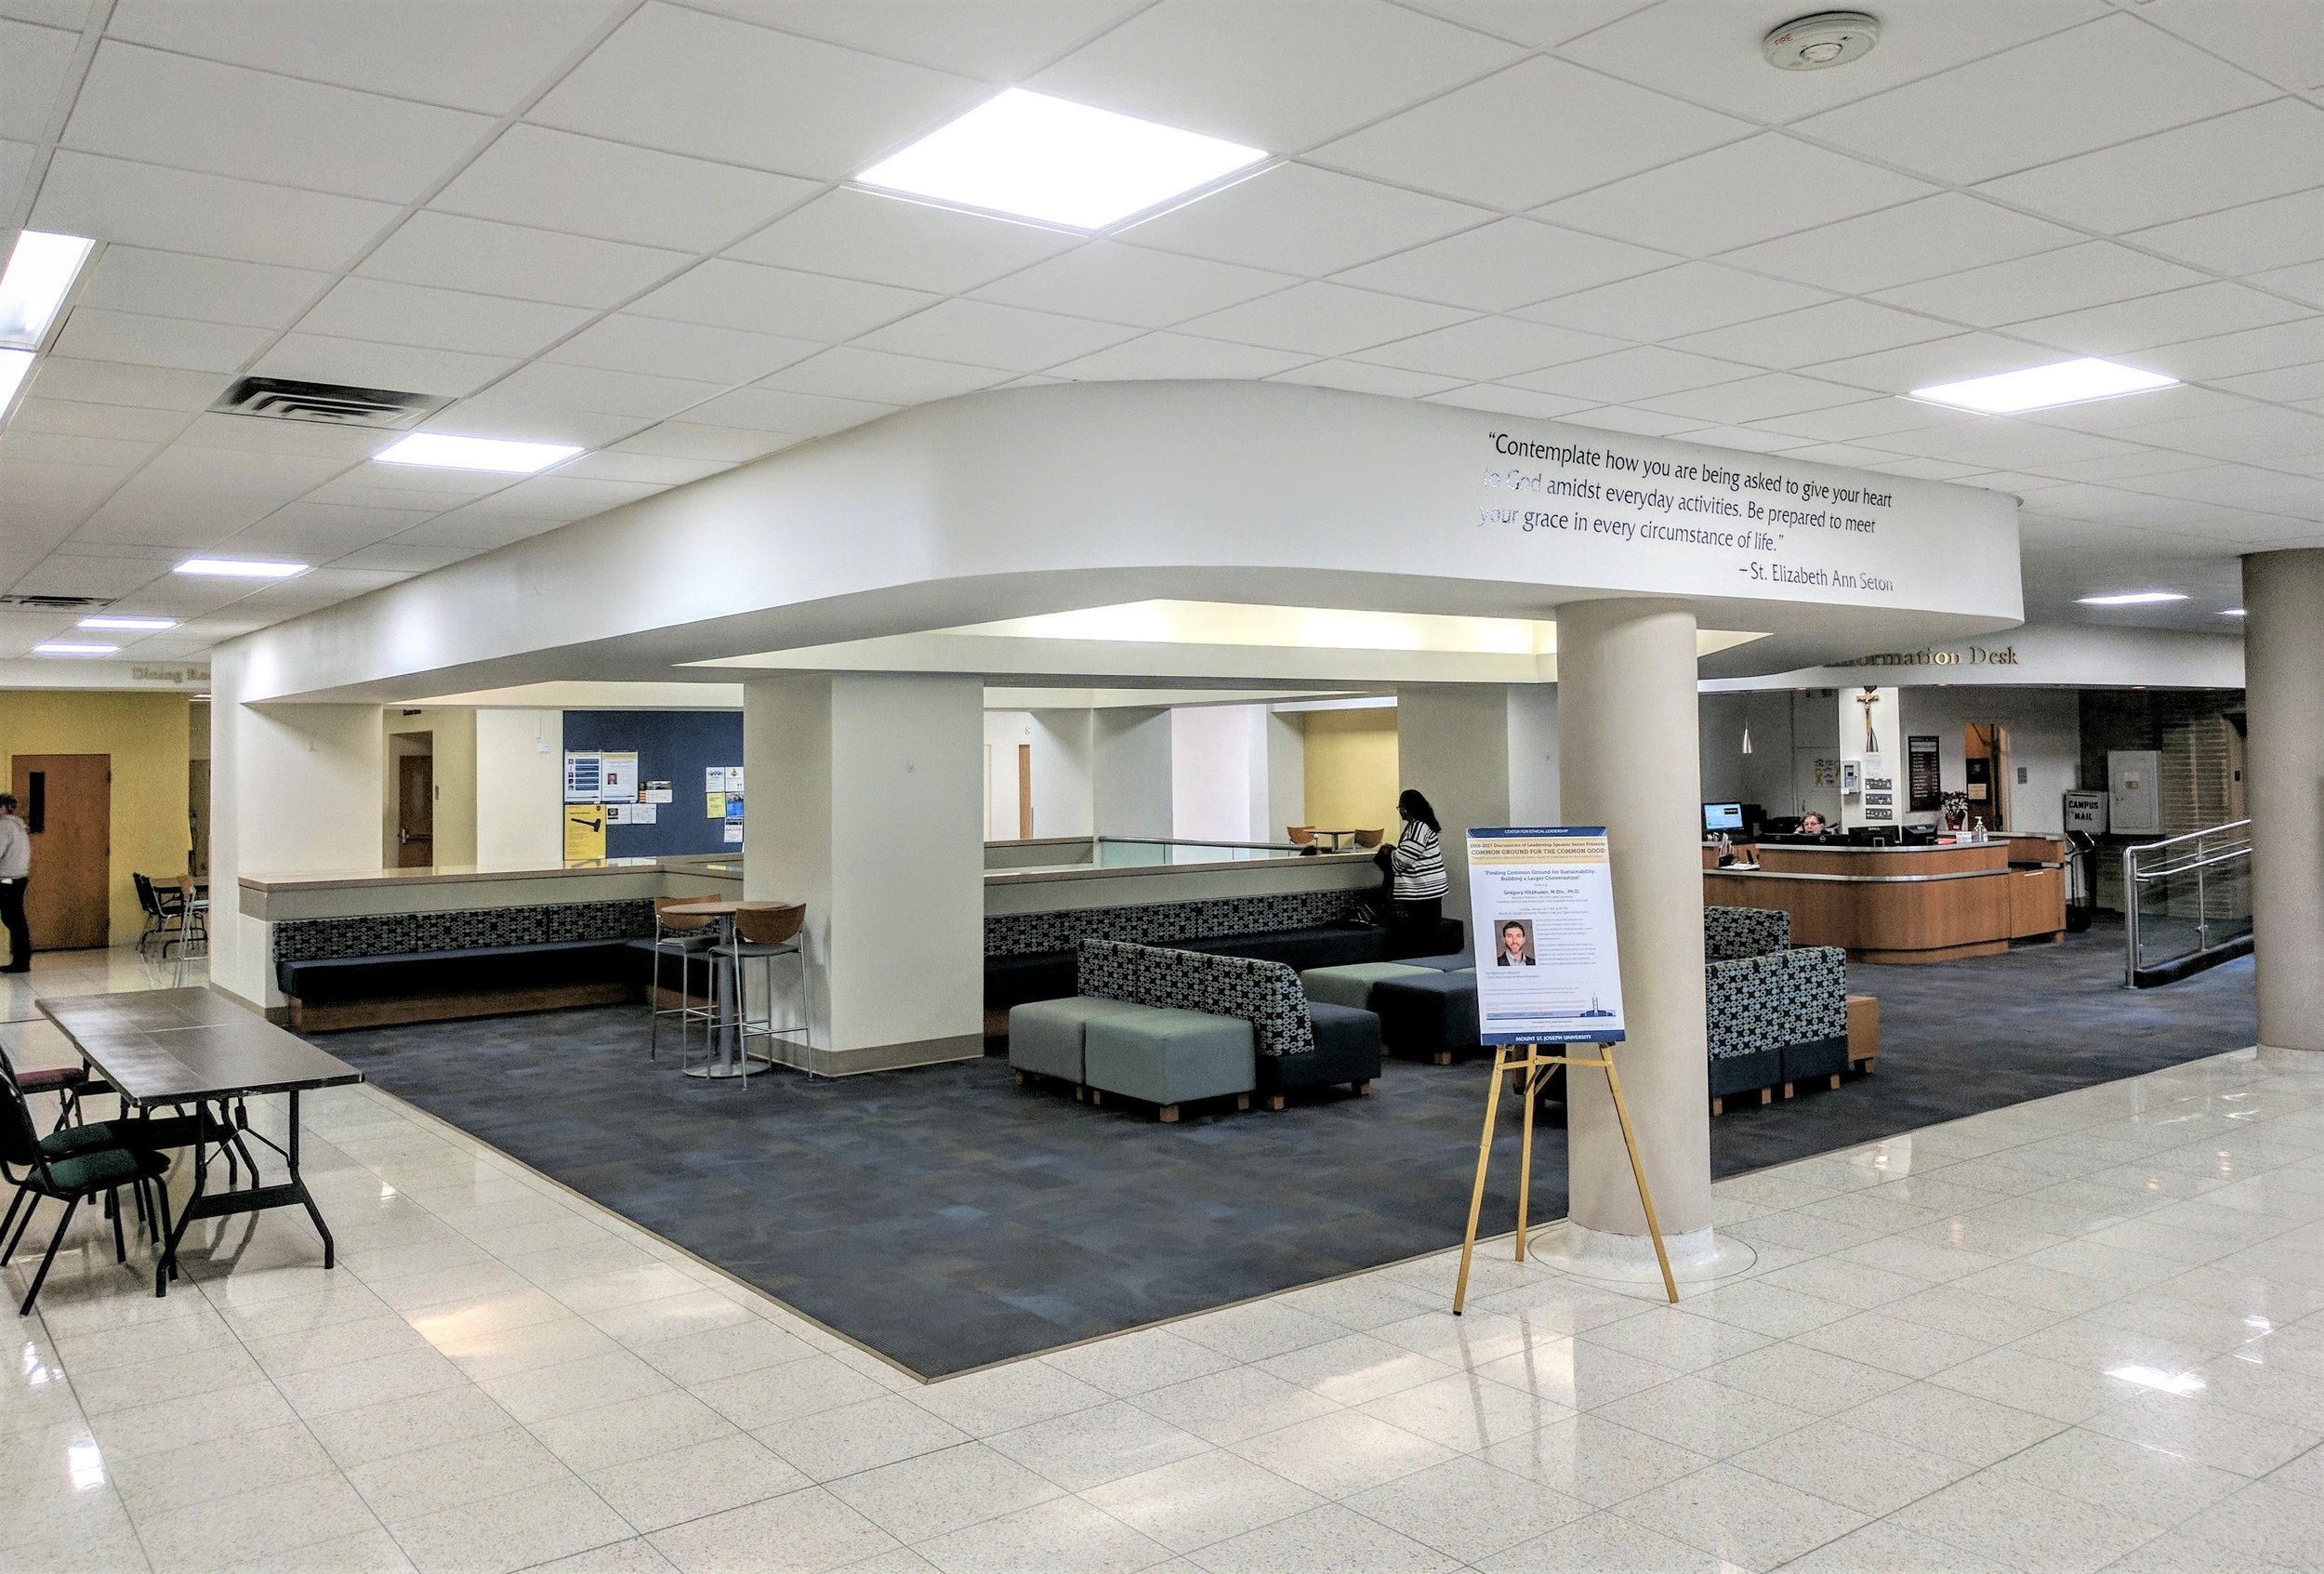 Mount St. Joseph University - Turnkey Project